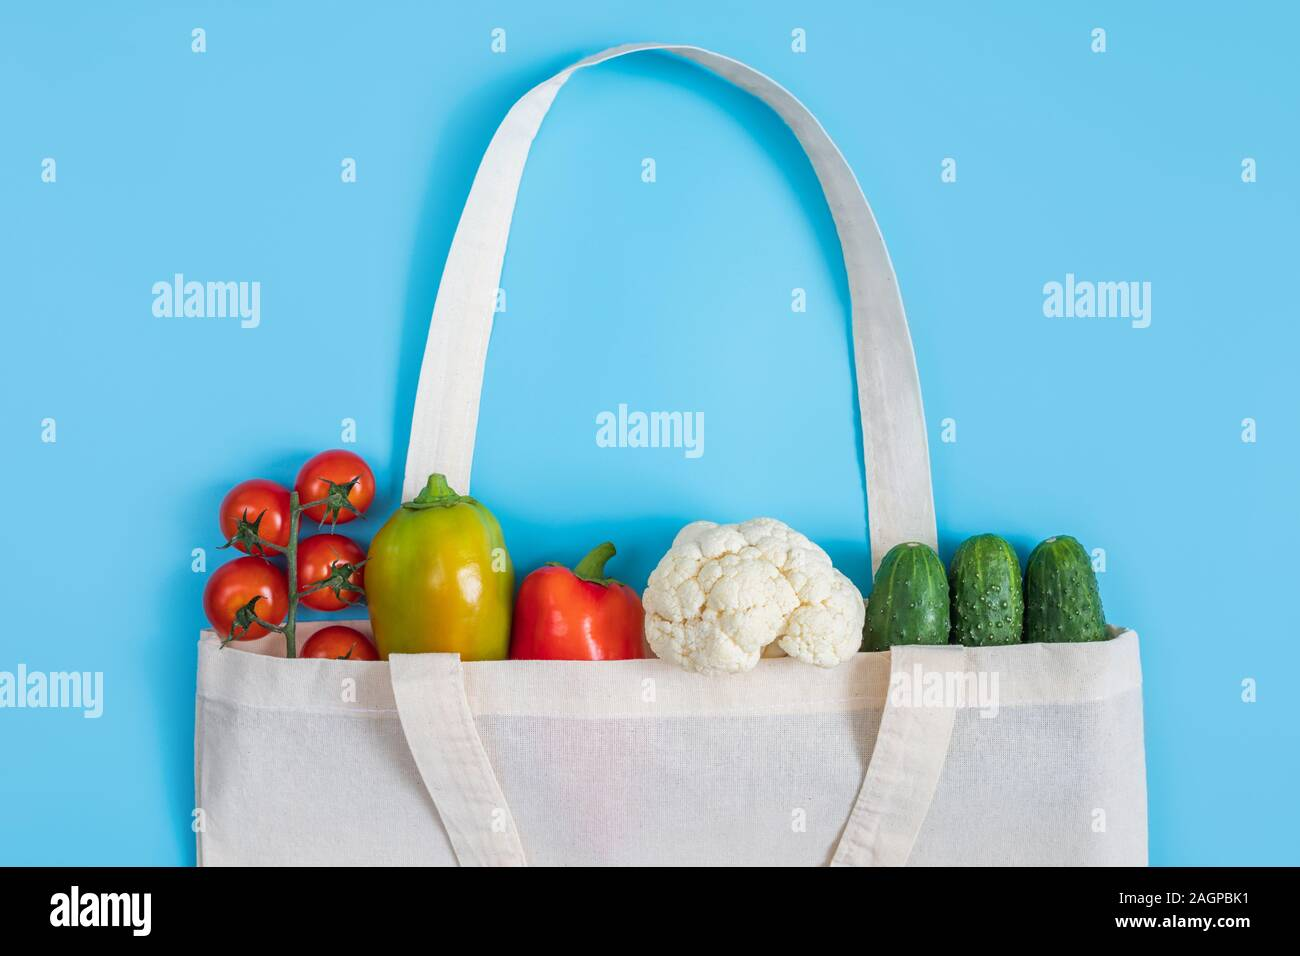 Zero waste concept. Vegetables in eco friendly reusable textile bag on blue background. Plastic free. Healthy fresh vegetarian food. Flat lay Stock Photo